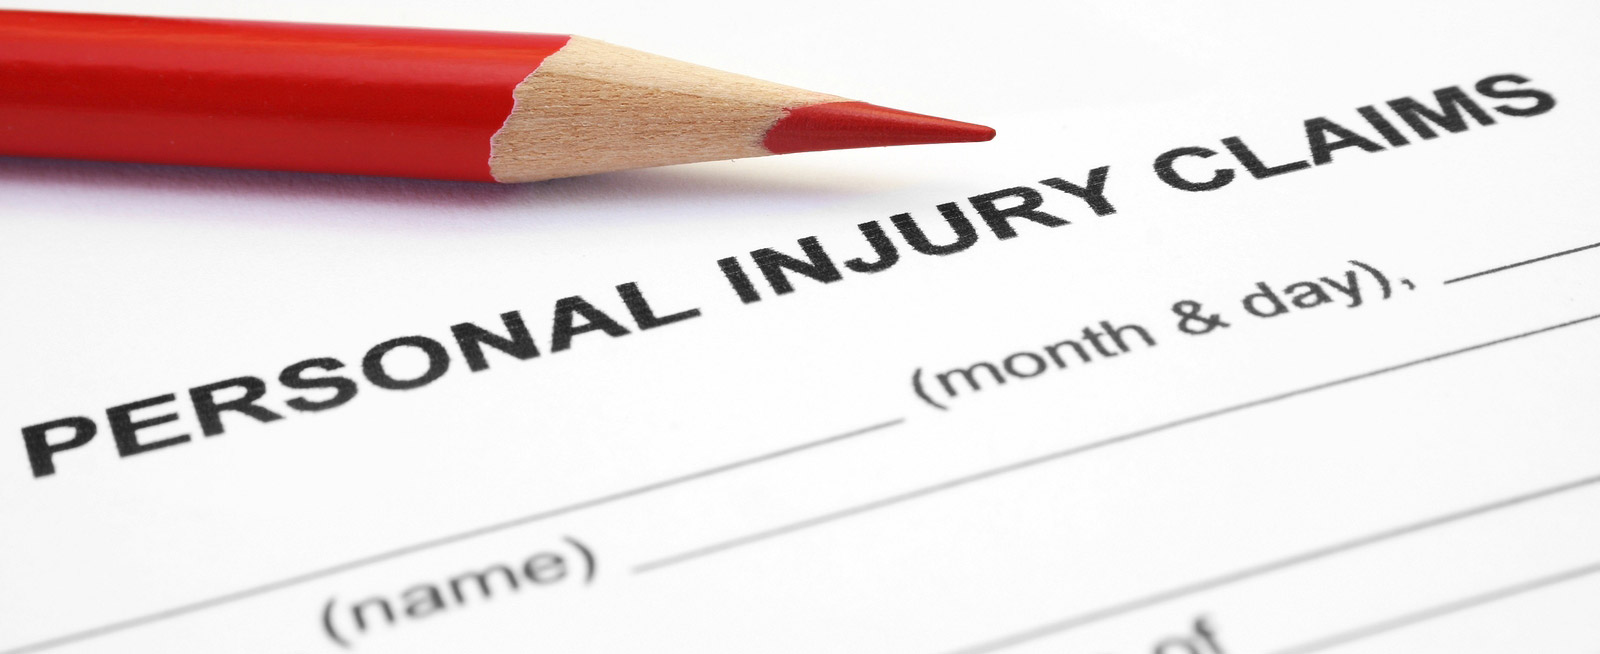 bigstock-Personal-Injury-Claim-24718079-cropped1